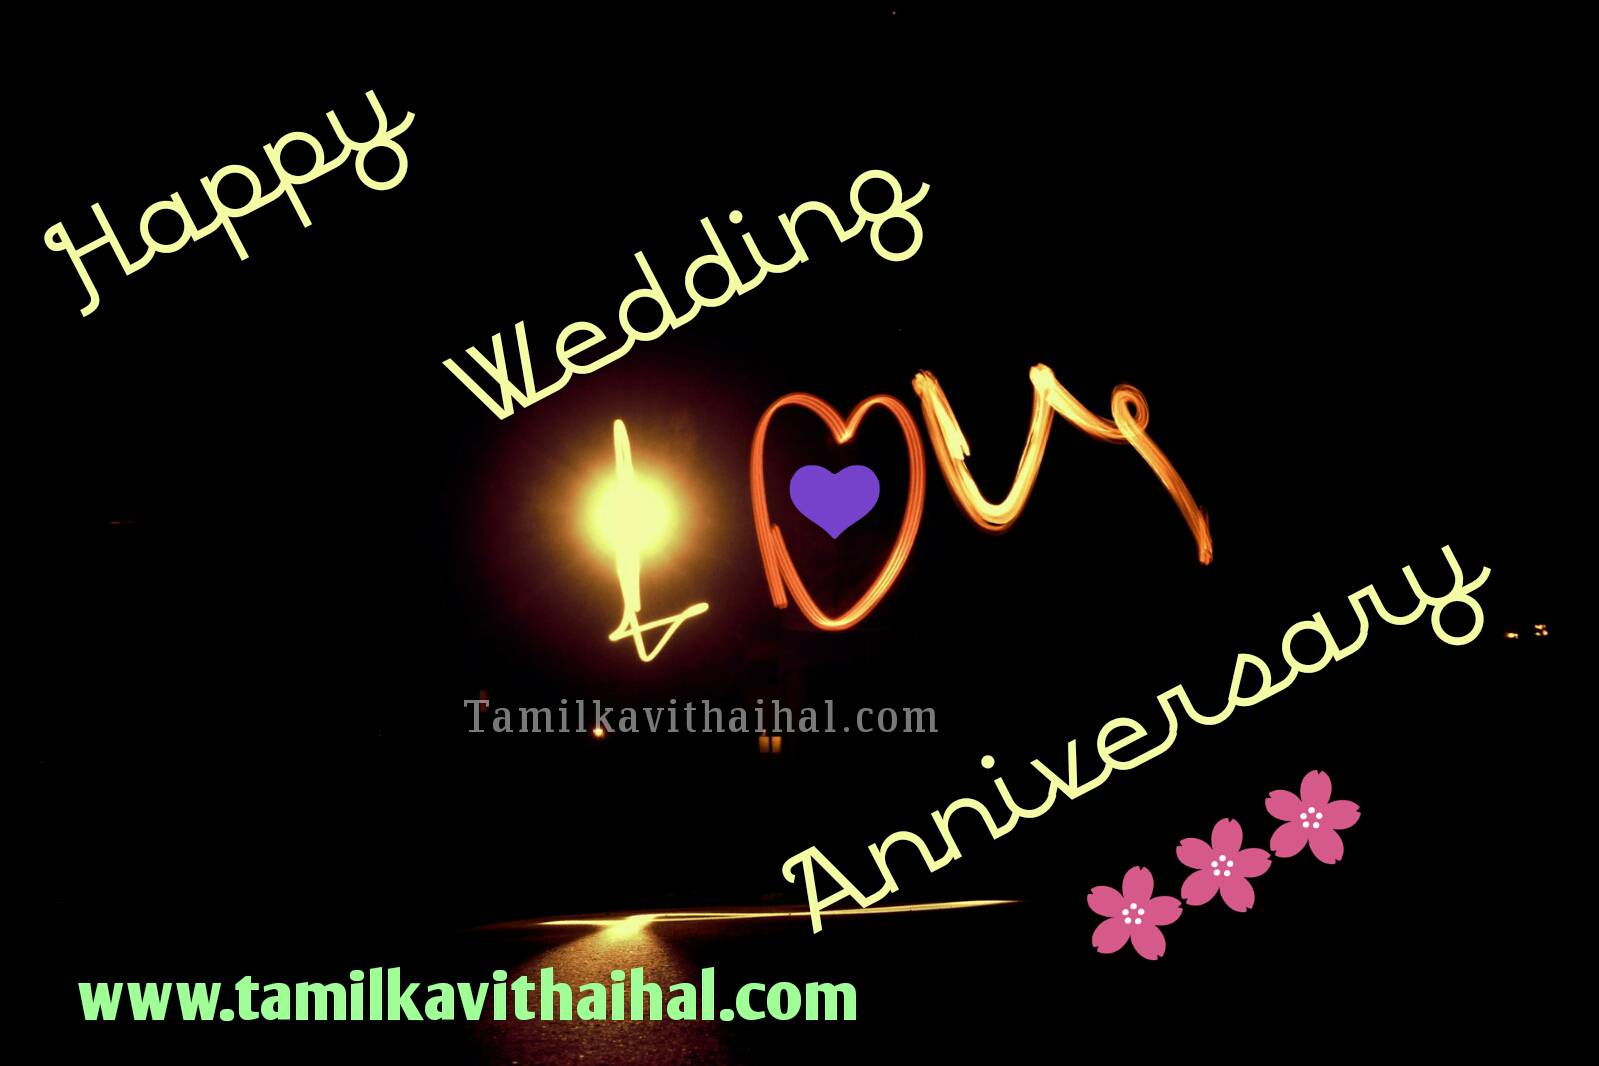 Thirumana valthukkal tamil wishes love couple wedding anniversary wishes image whatsapp status download